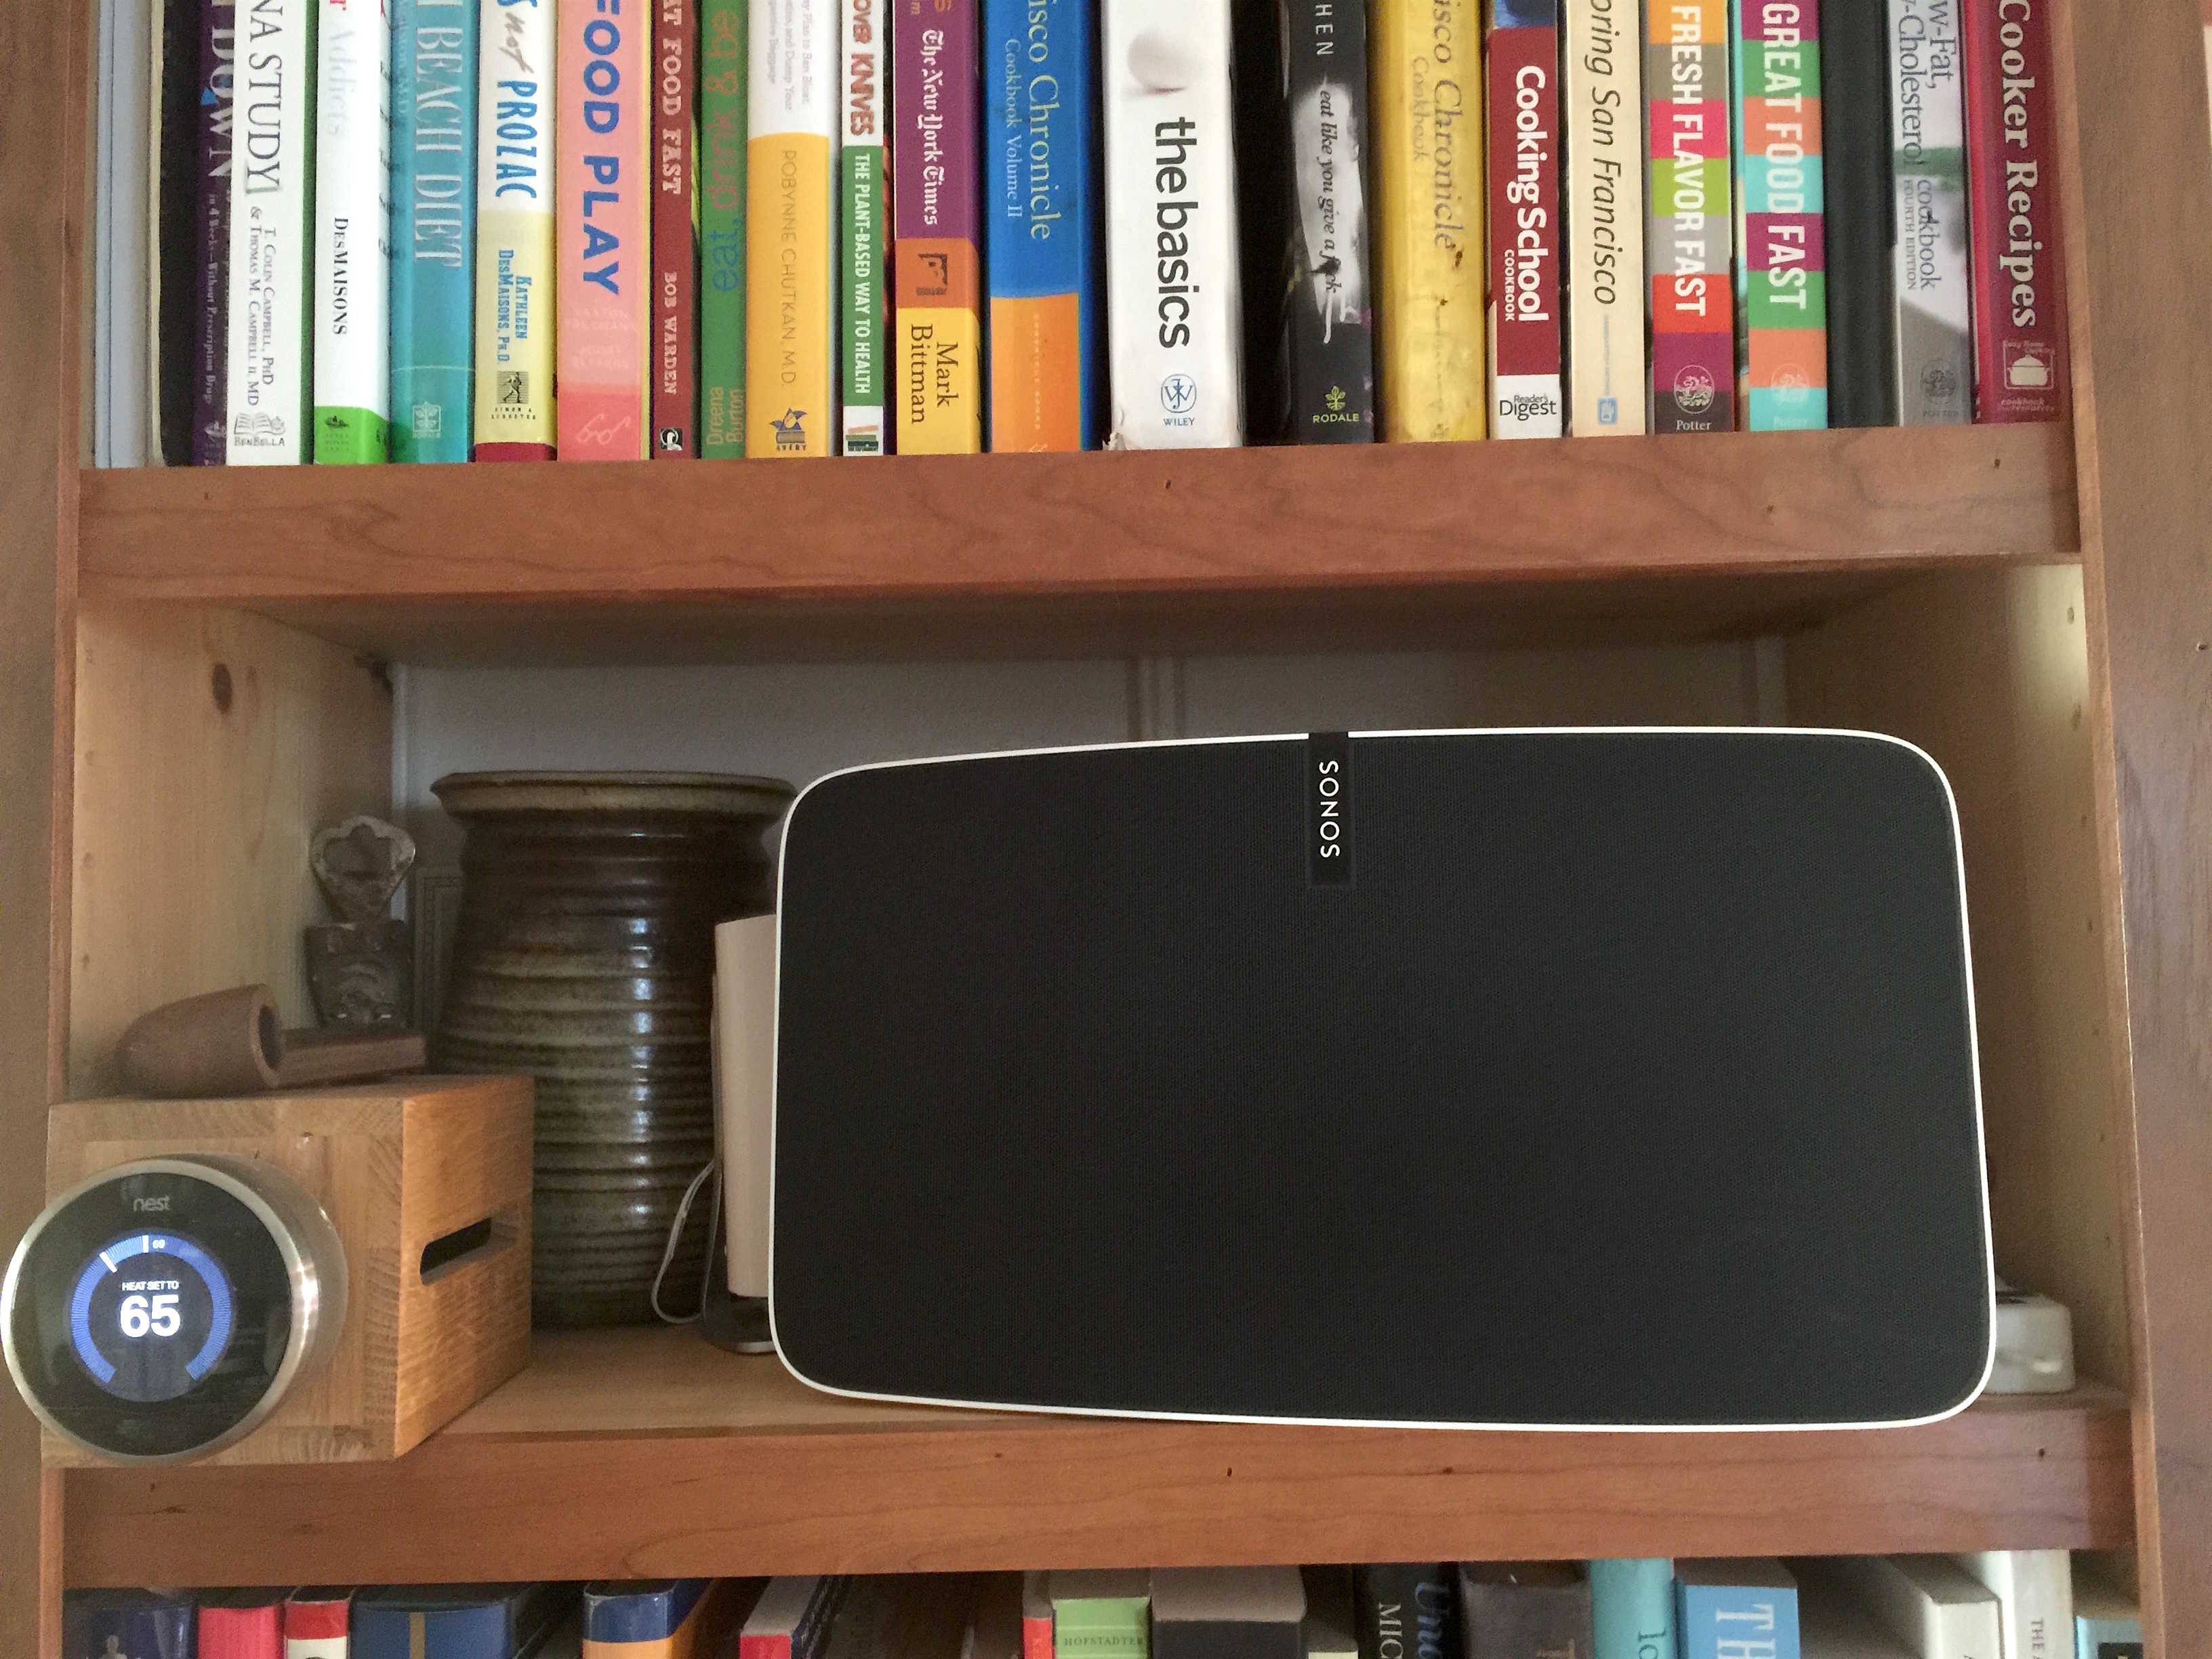 The new Play:5 speaker is a great update to Sonos' top-of-the-line box.